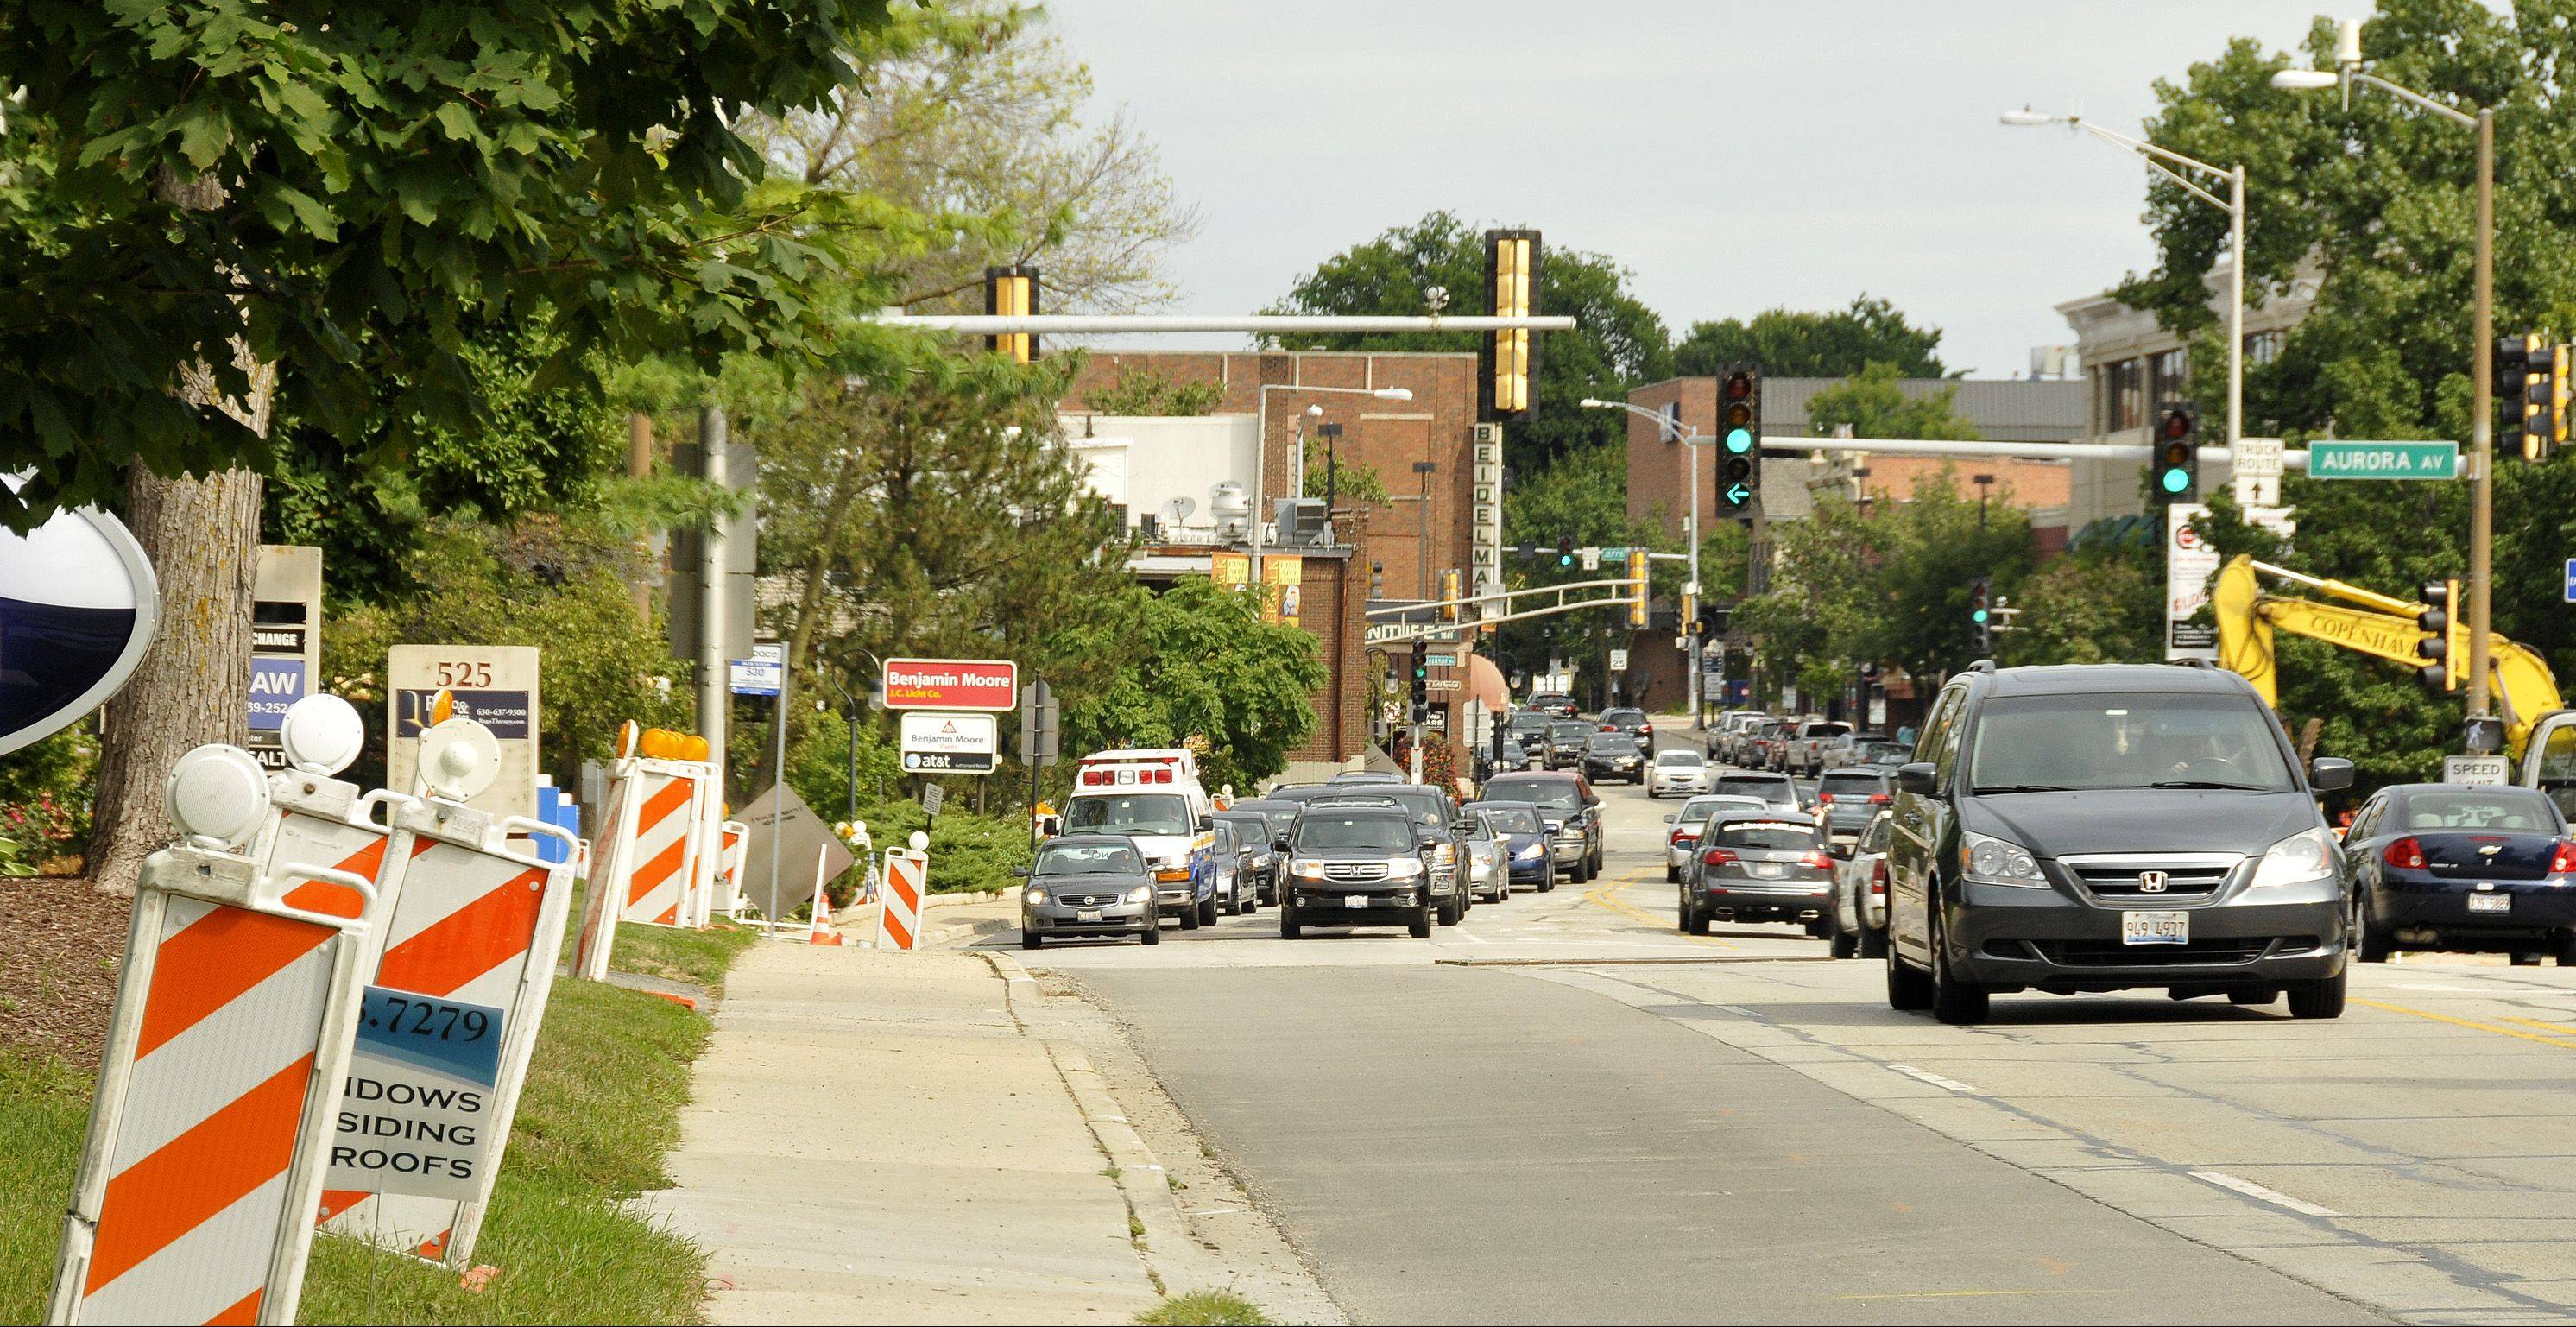 The lane closing markers are lined up along Washington Street in downtown Naperville in anticipation of a resurfacing project that starts Monday.